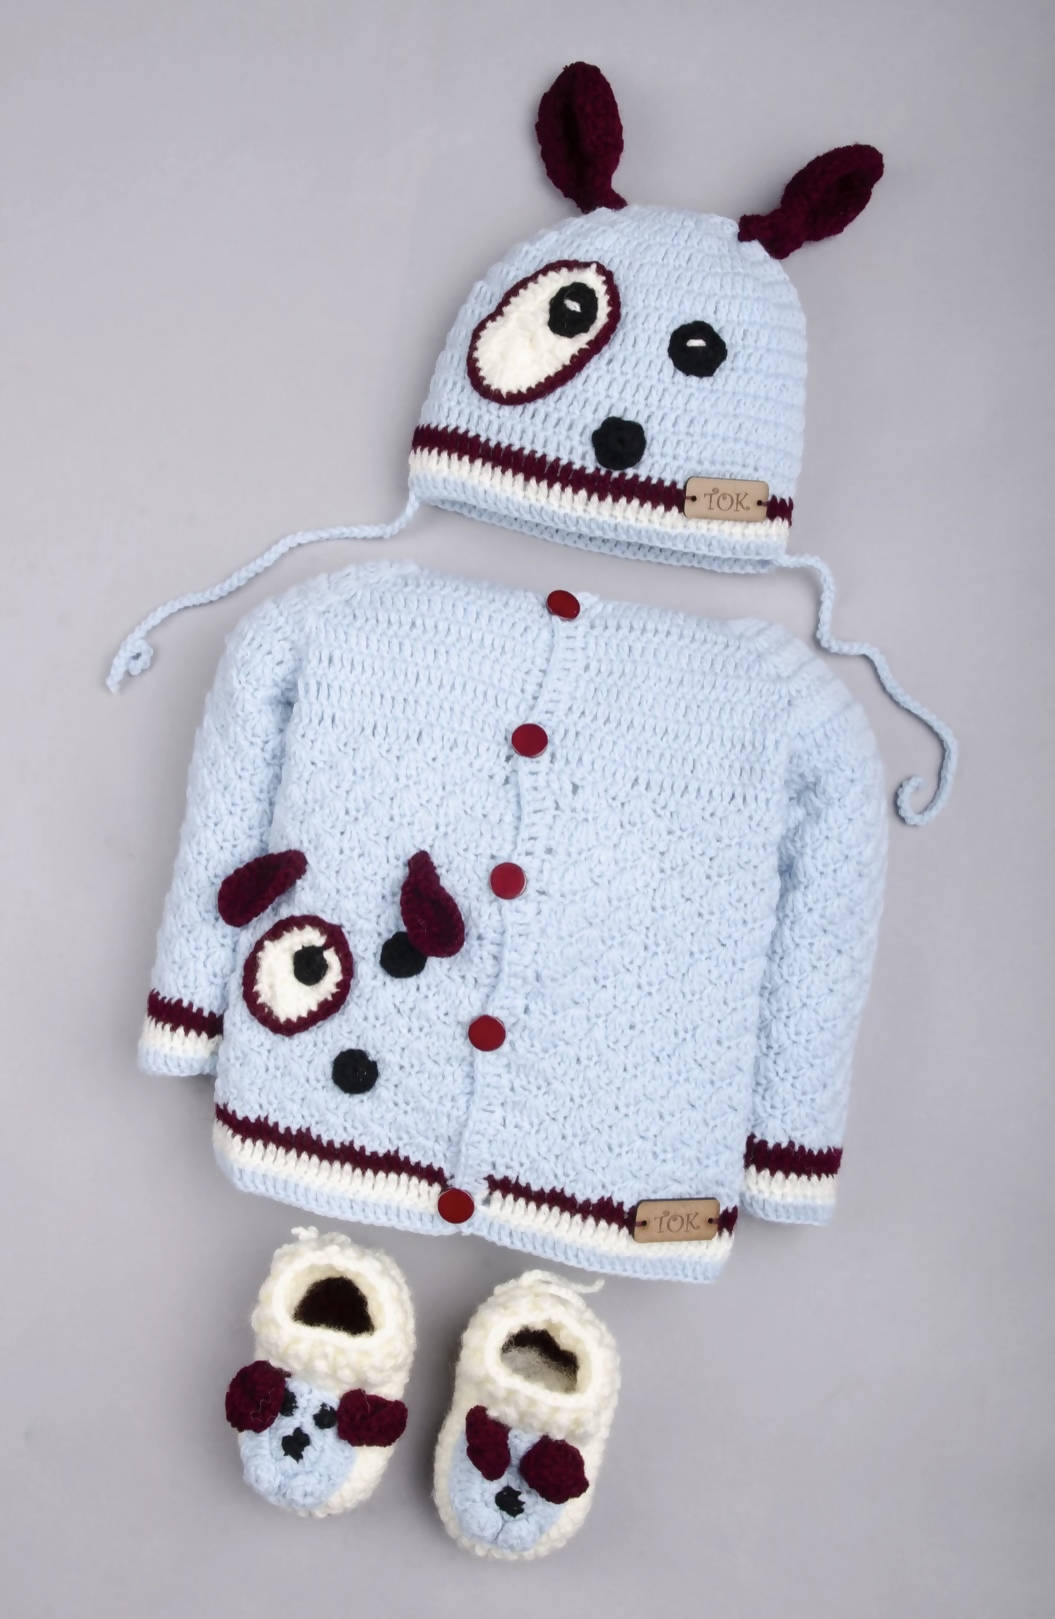 Blue baby sweater 3-6 months